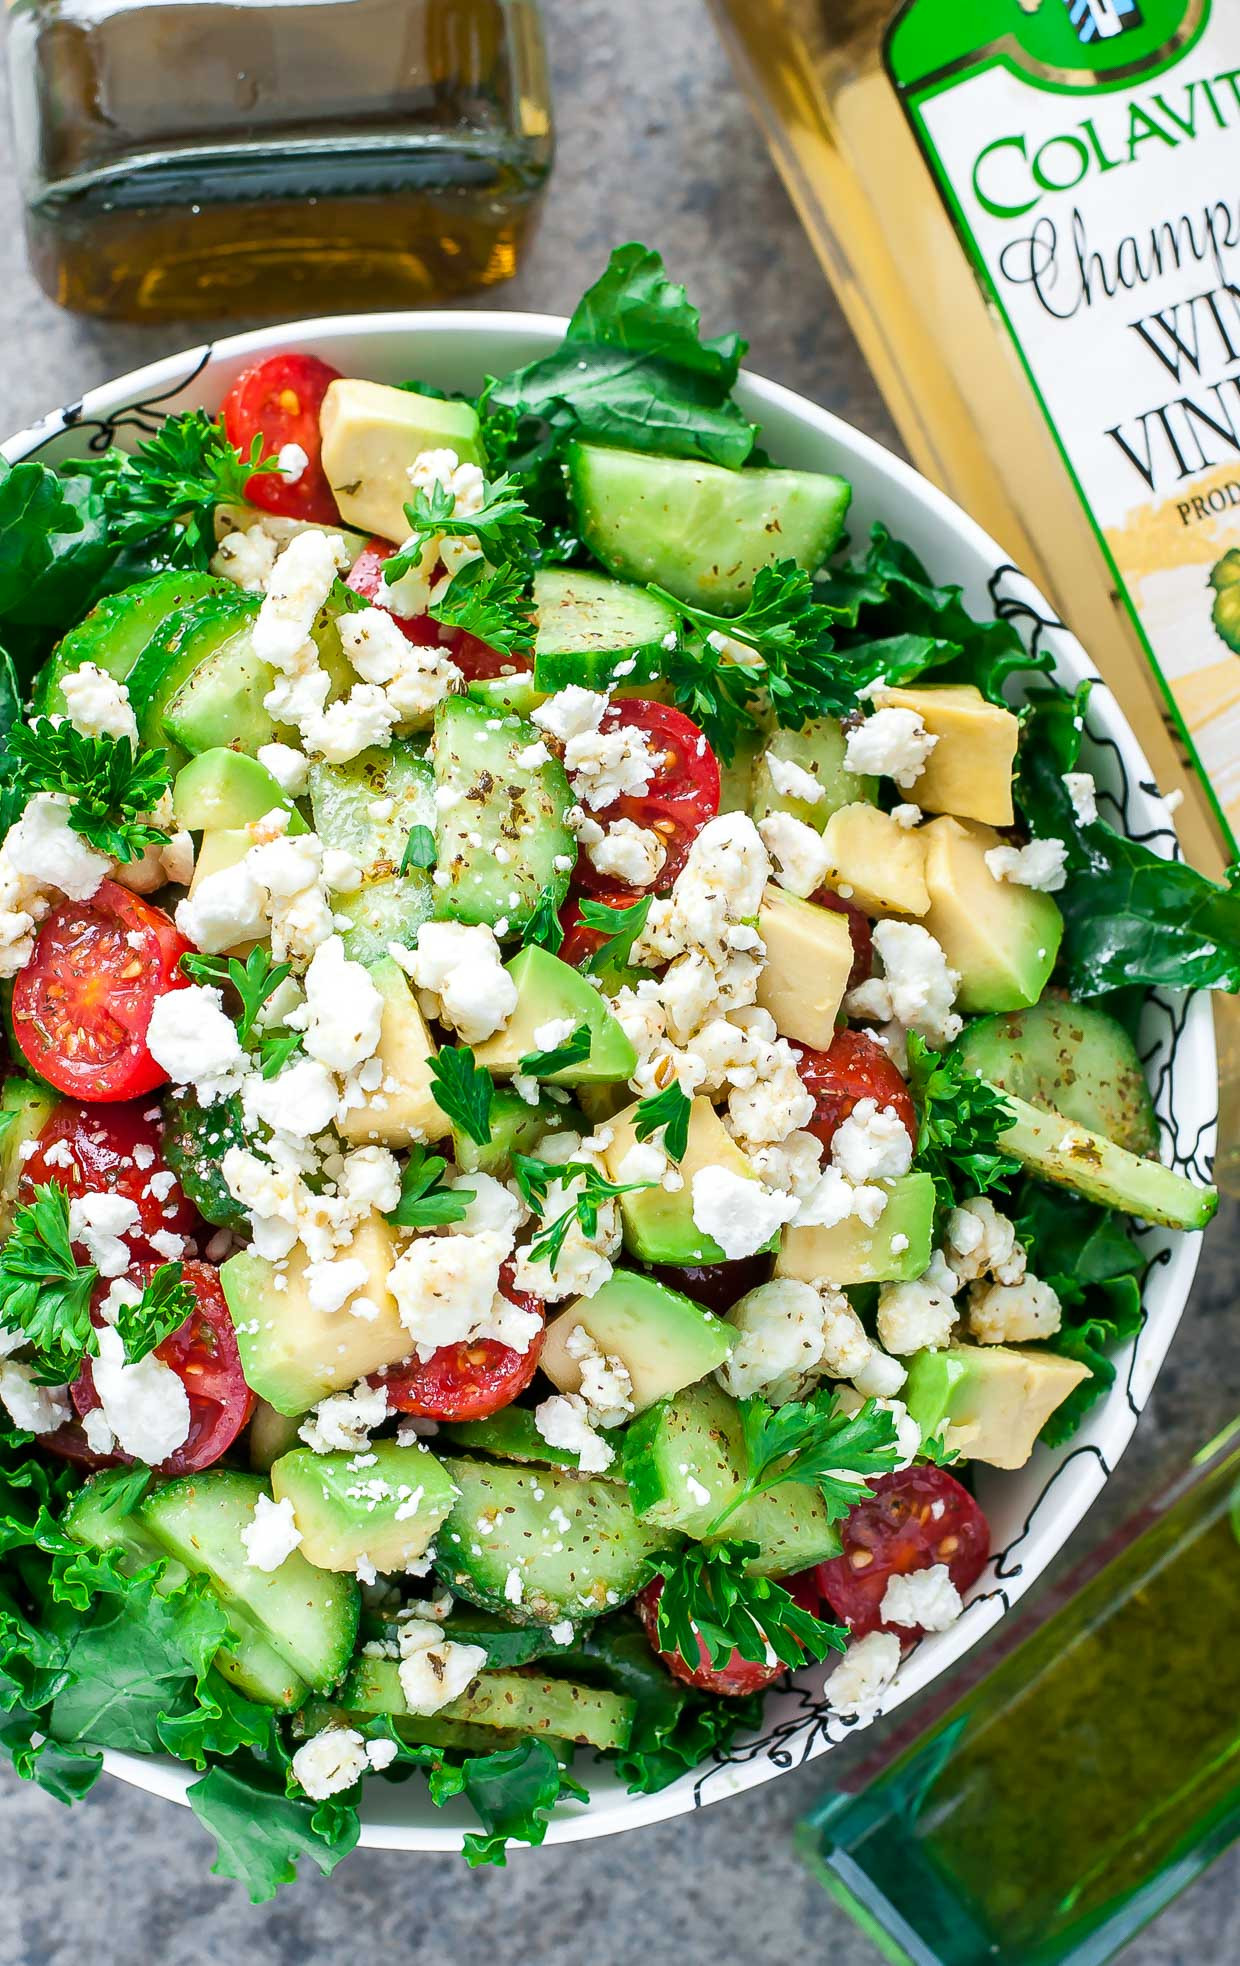 Healthy Kale Recipes  Greek Kale Salad Recipe with Easy Homemade Greek Dressing